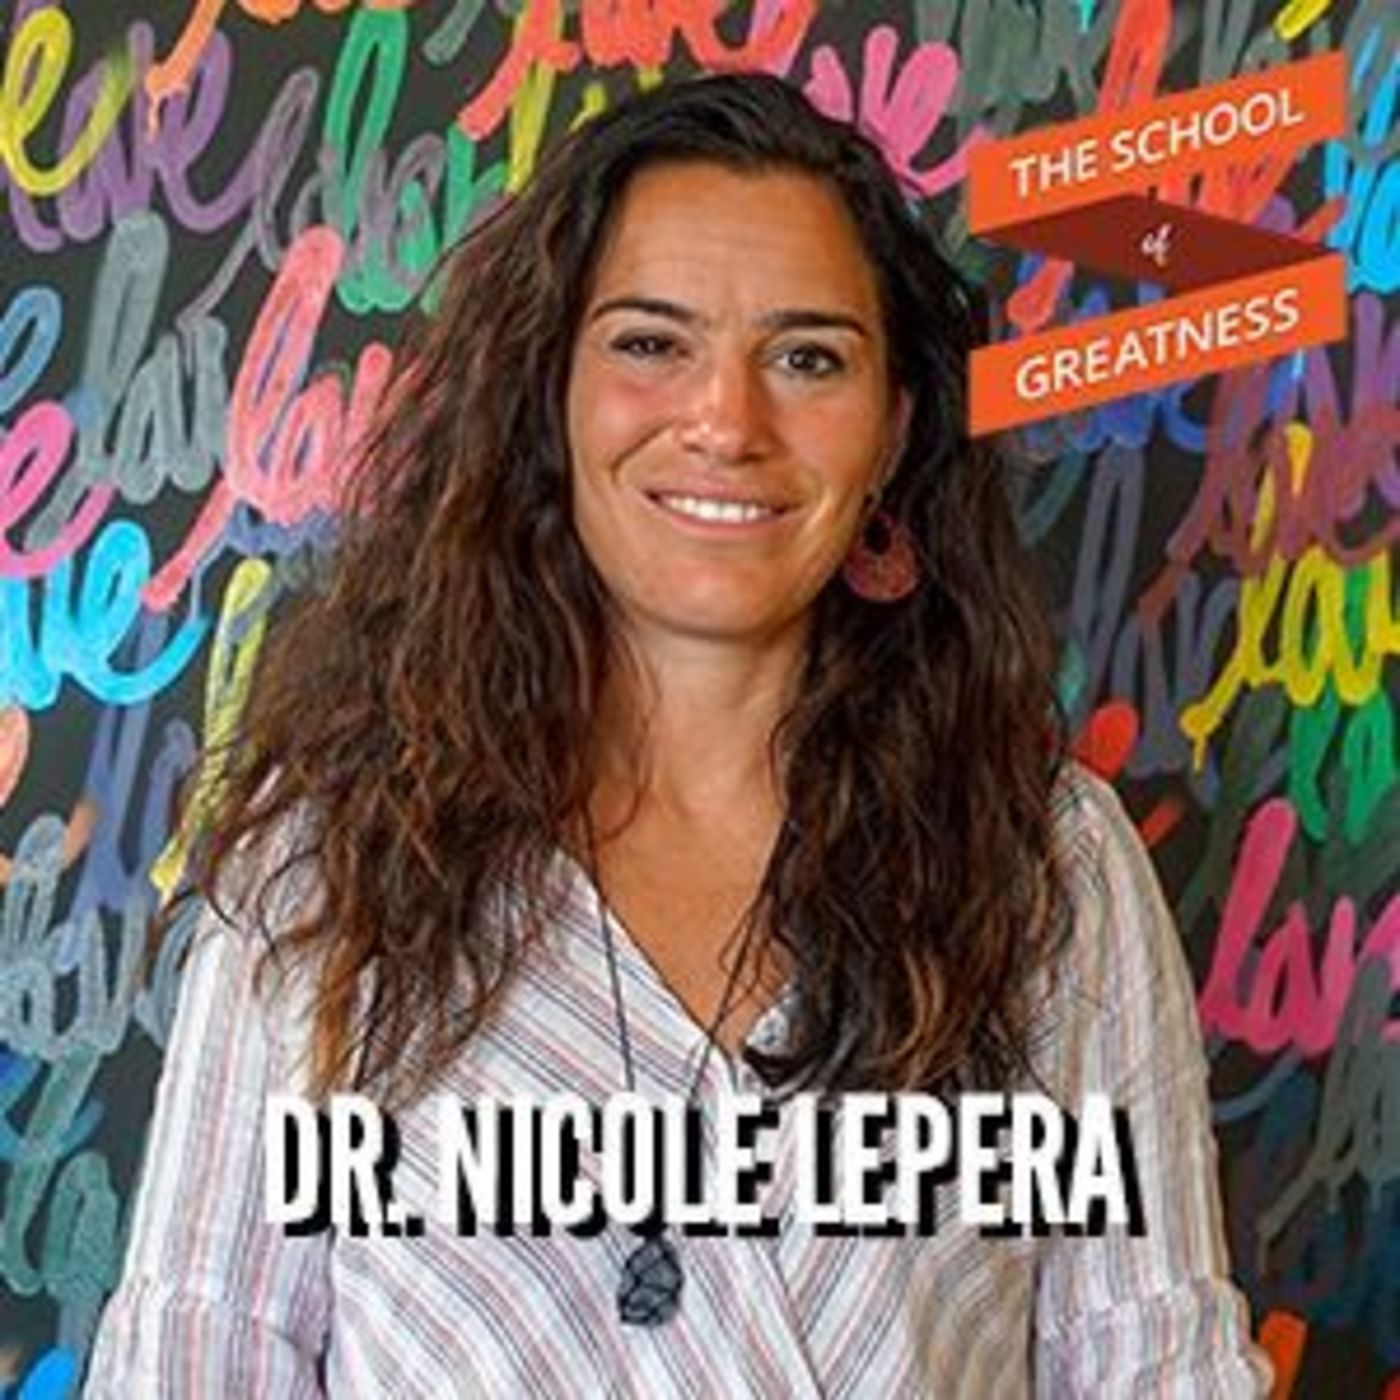 Become a Self-Healer and Break Free of Emotional Cycles with Dr. Nicole LePera